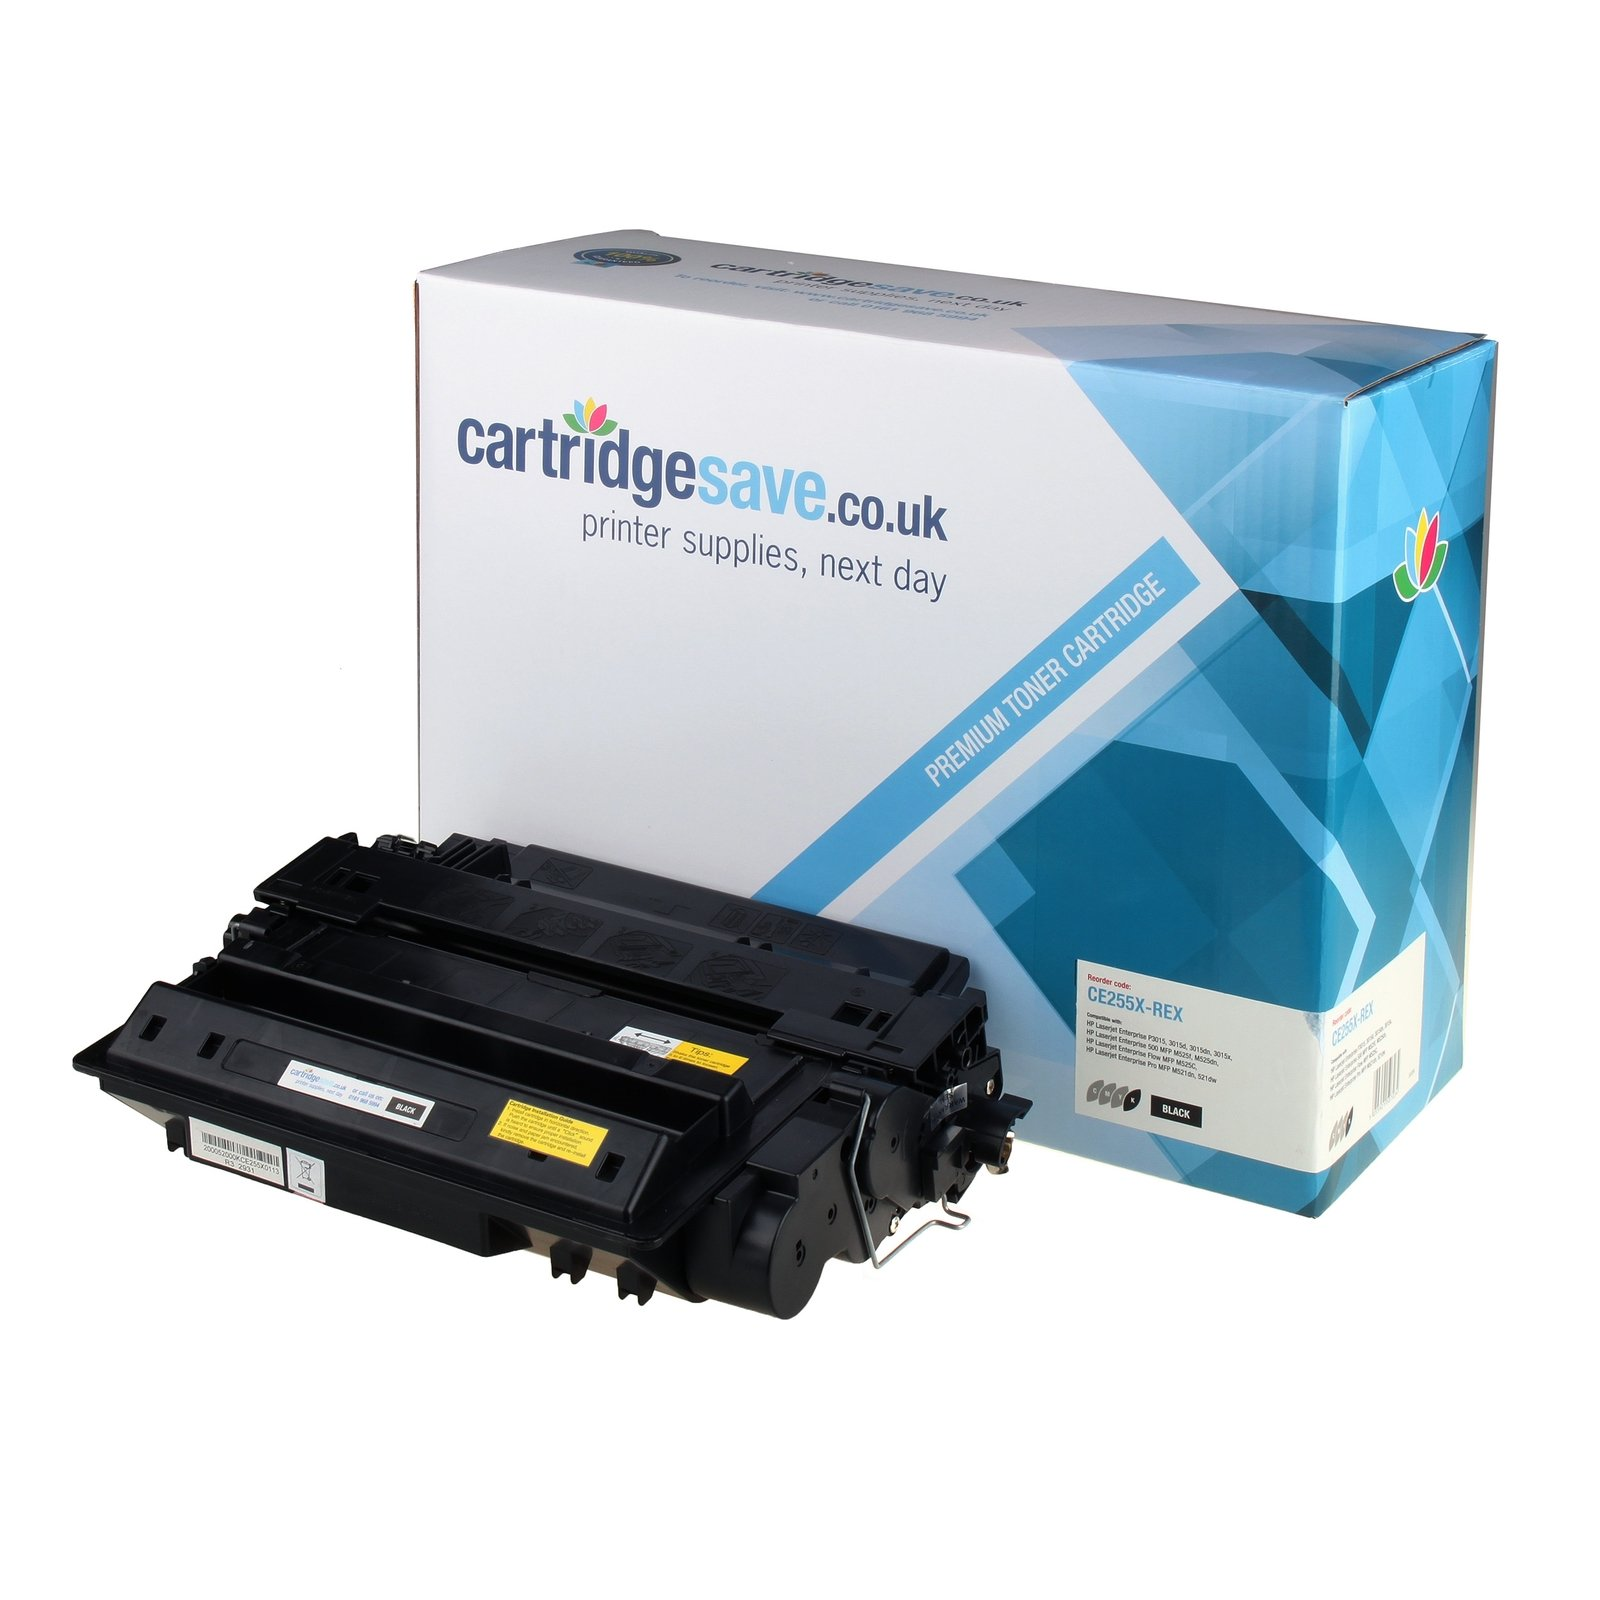 Compatible High Capacity Black HP 55X Toner Cartridge (Replaces HP CE255X Laser Printer Cartridge)